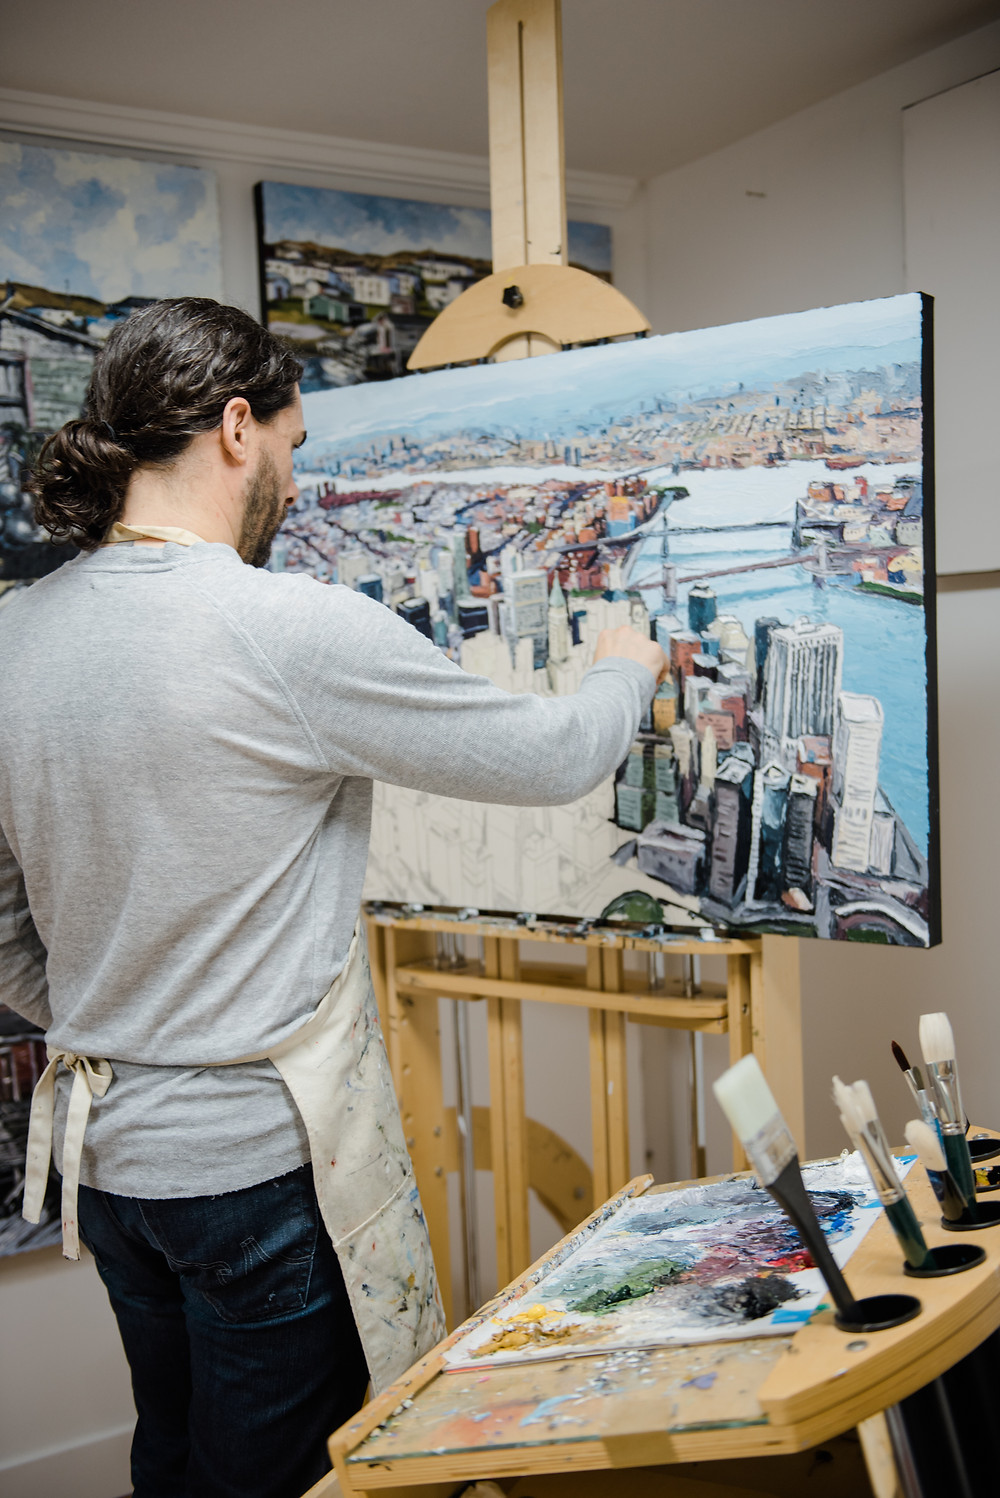 Mike Fantuz artist painting an aerial landscape of New York City with Palette Knife and Oil paint on canvas